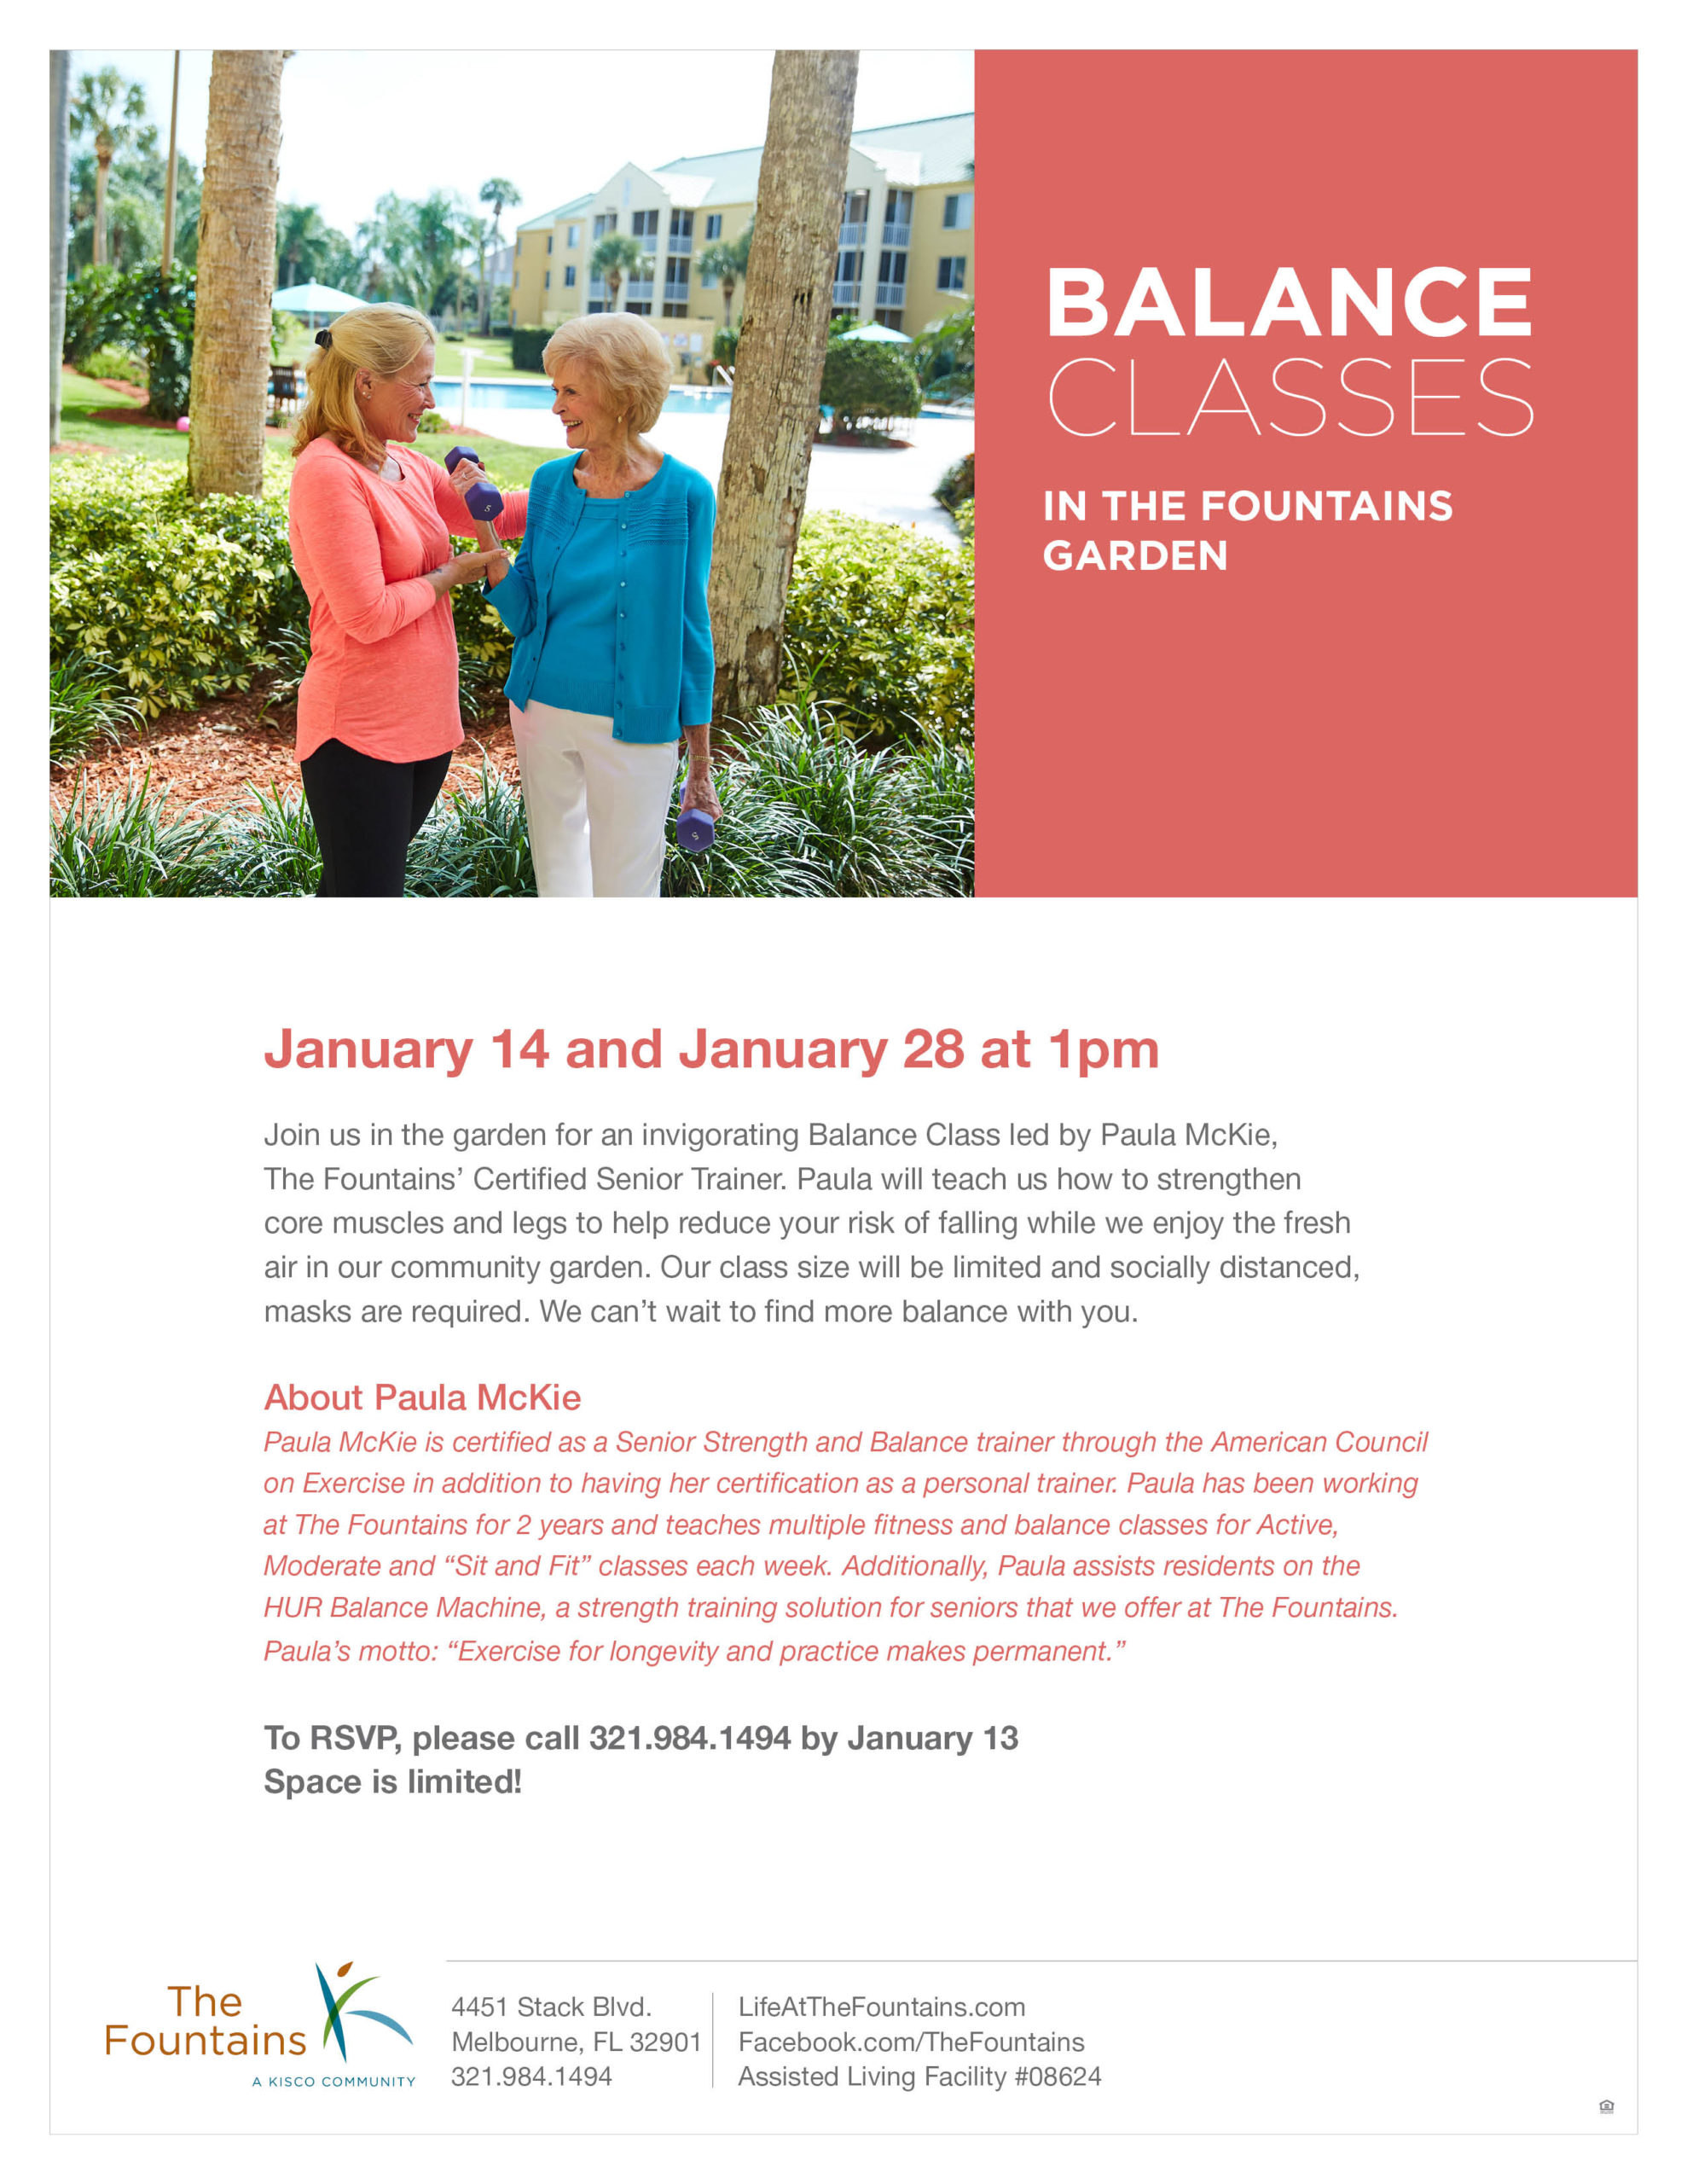 Balance Classes in The Fountains Garden